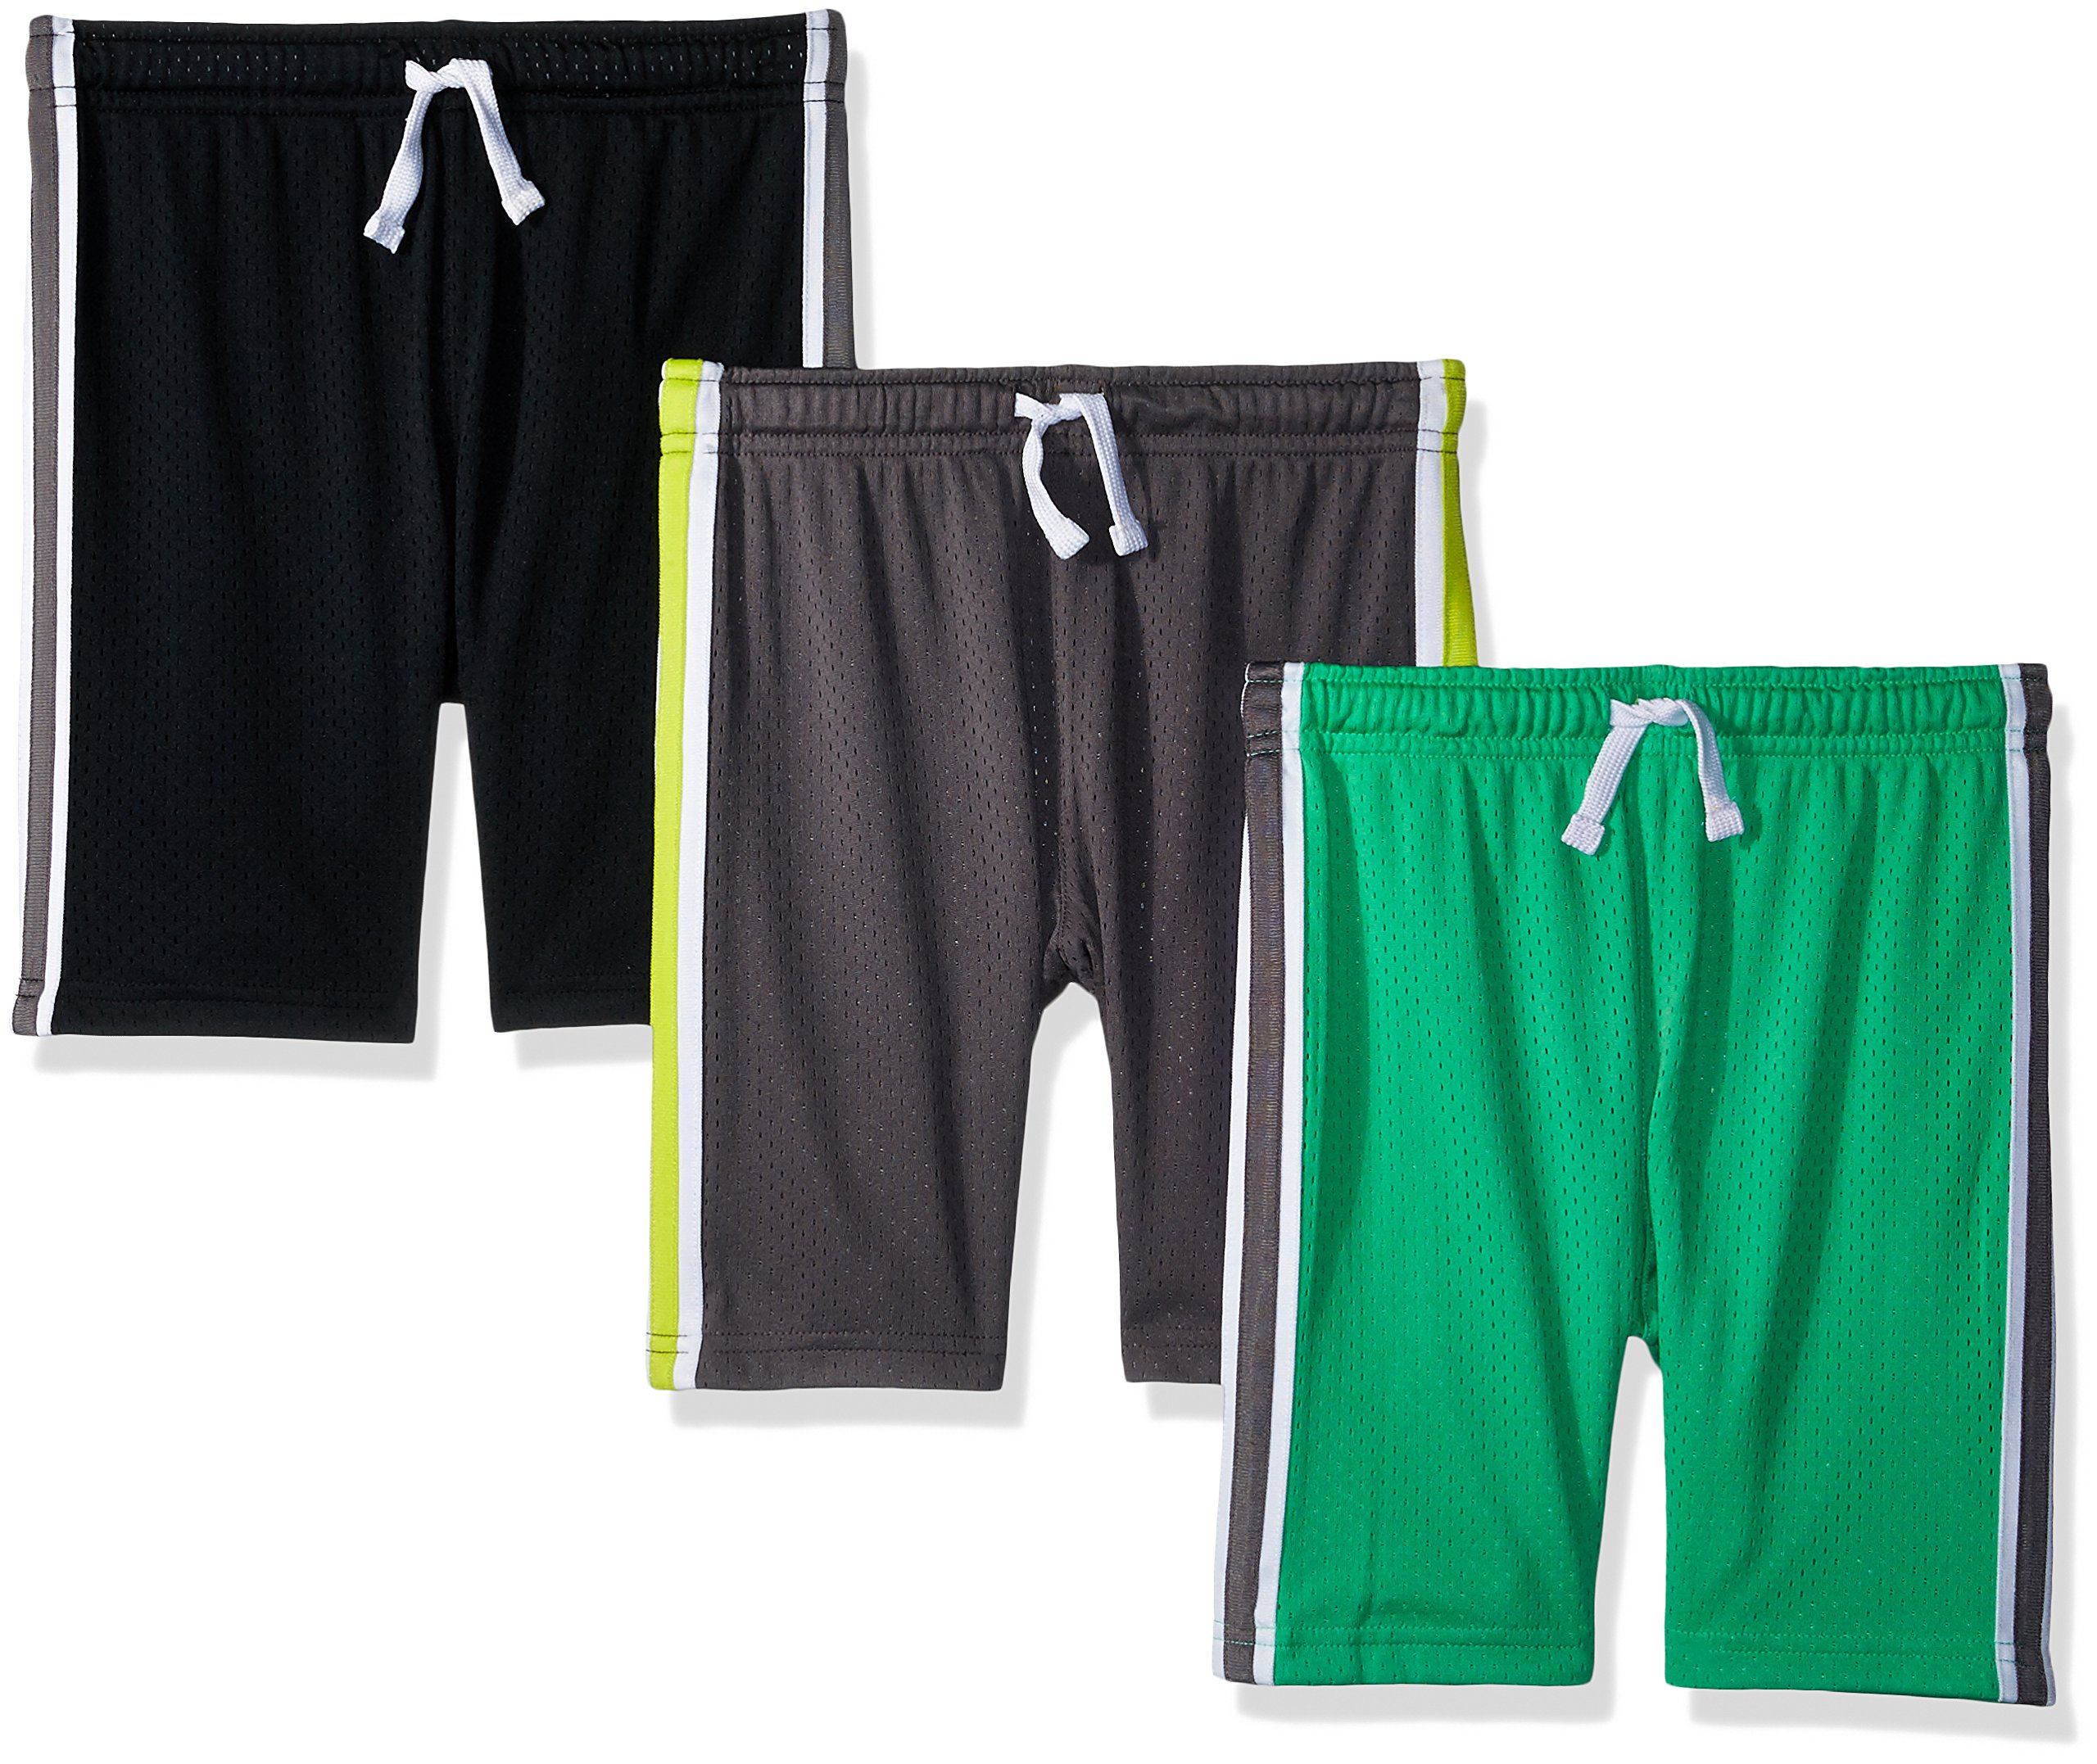 Simple Joys by Carter's Baby Boys' Toddler 3-Pack Mesh Shorts, Black, Green, Gray, 3T by Simple Joys by Carter's